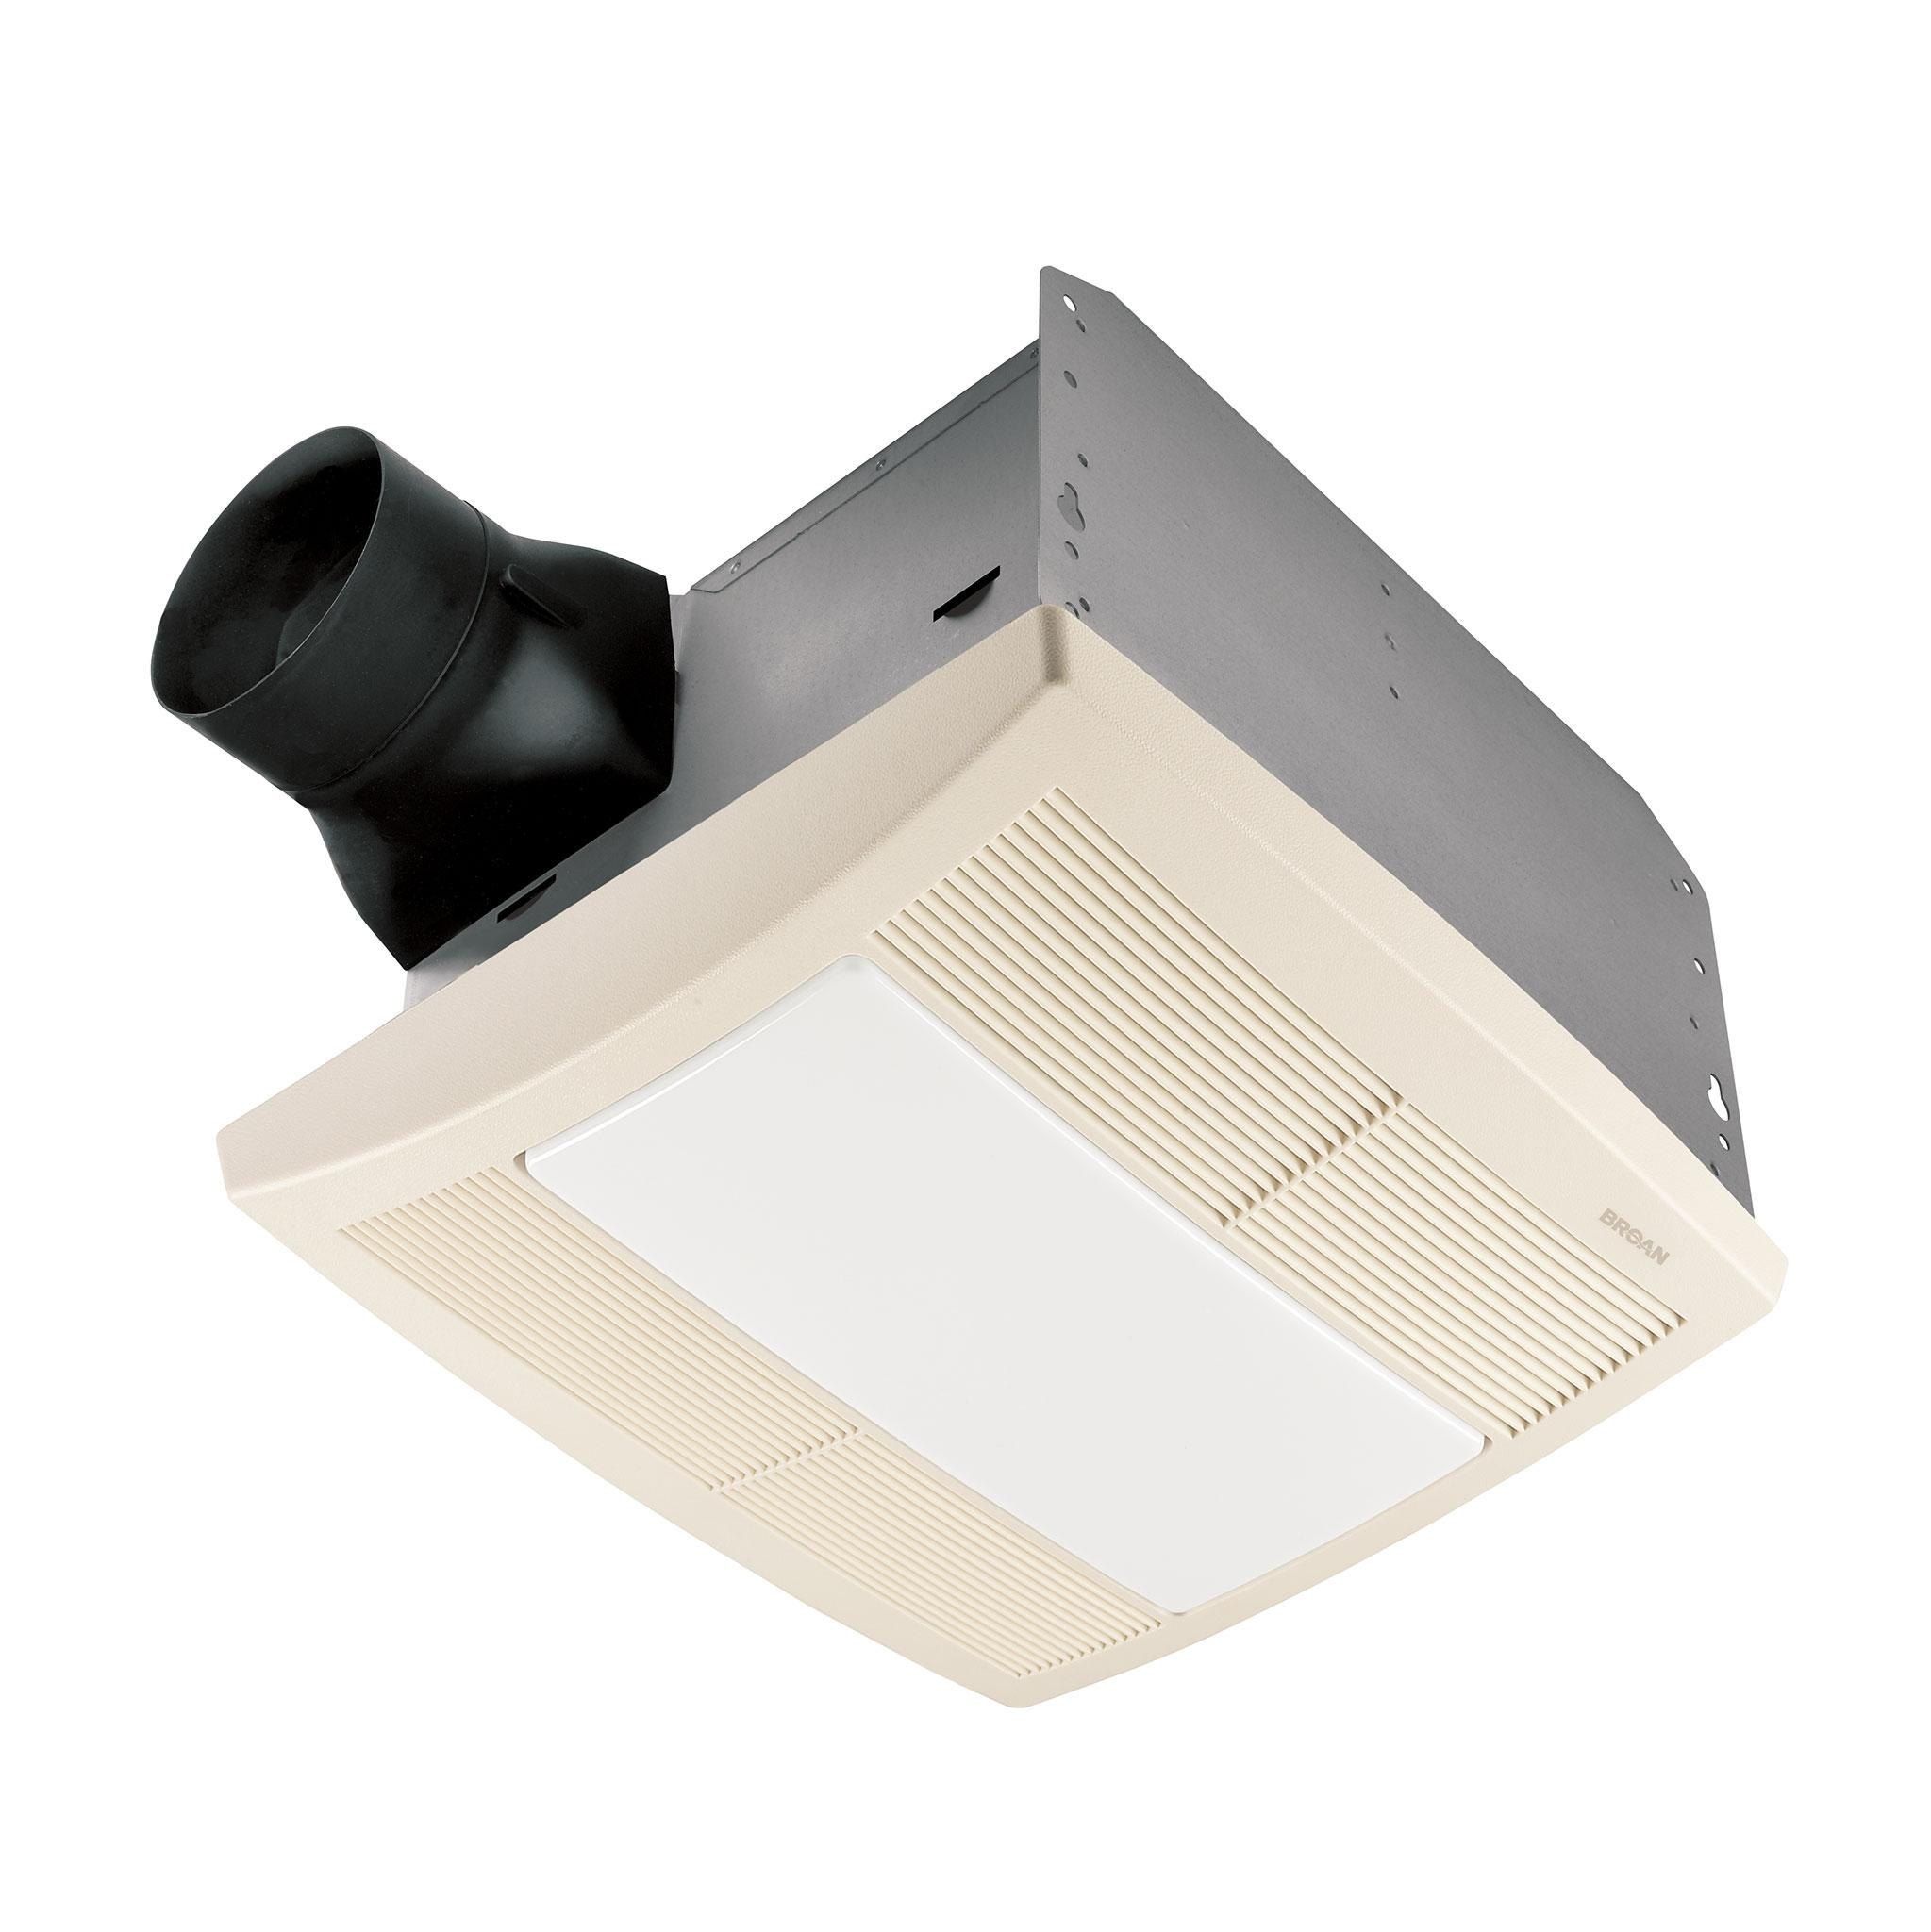 quiet bathroom exhaust fans with light broan qtr080l ventilation fan and light bathroom fans 25698